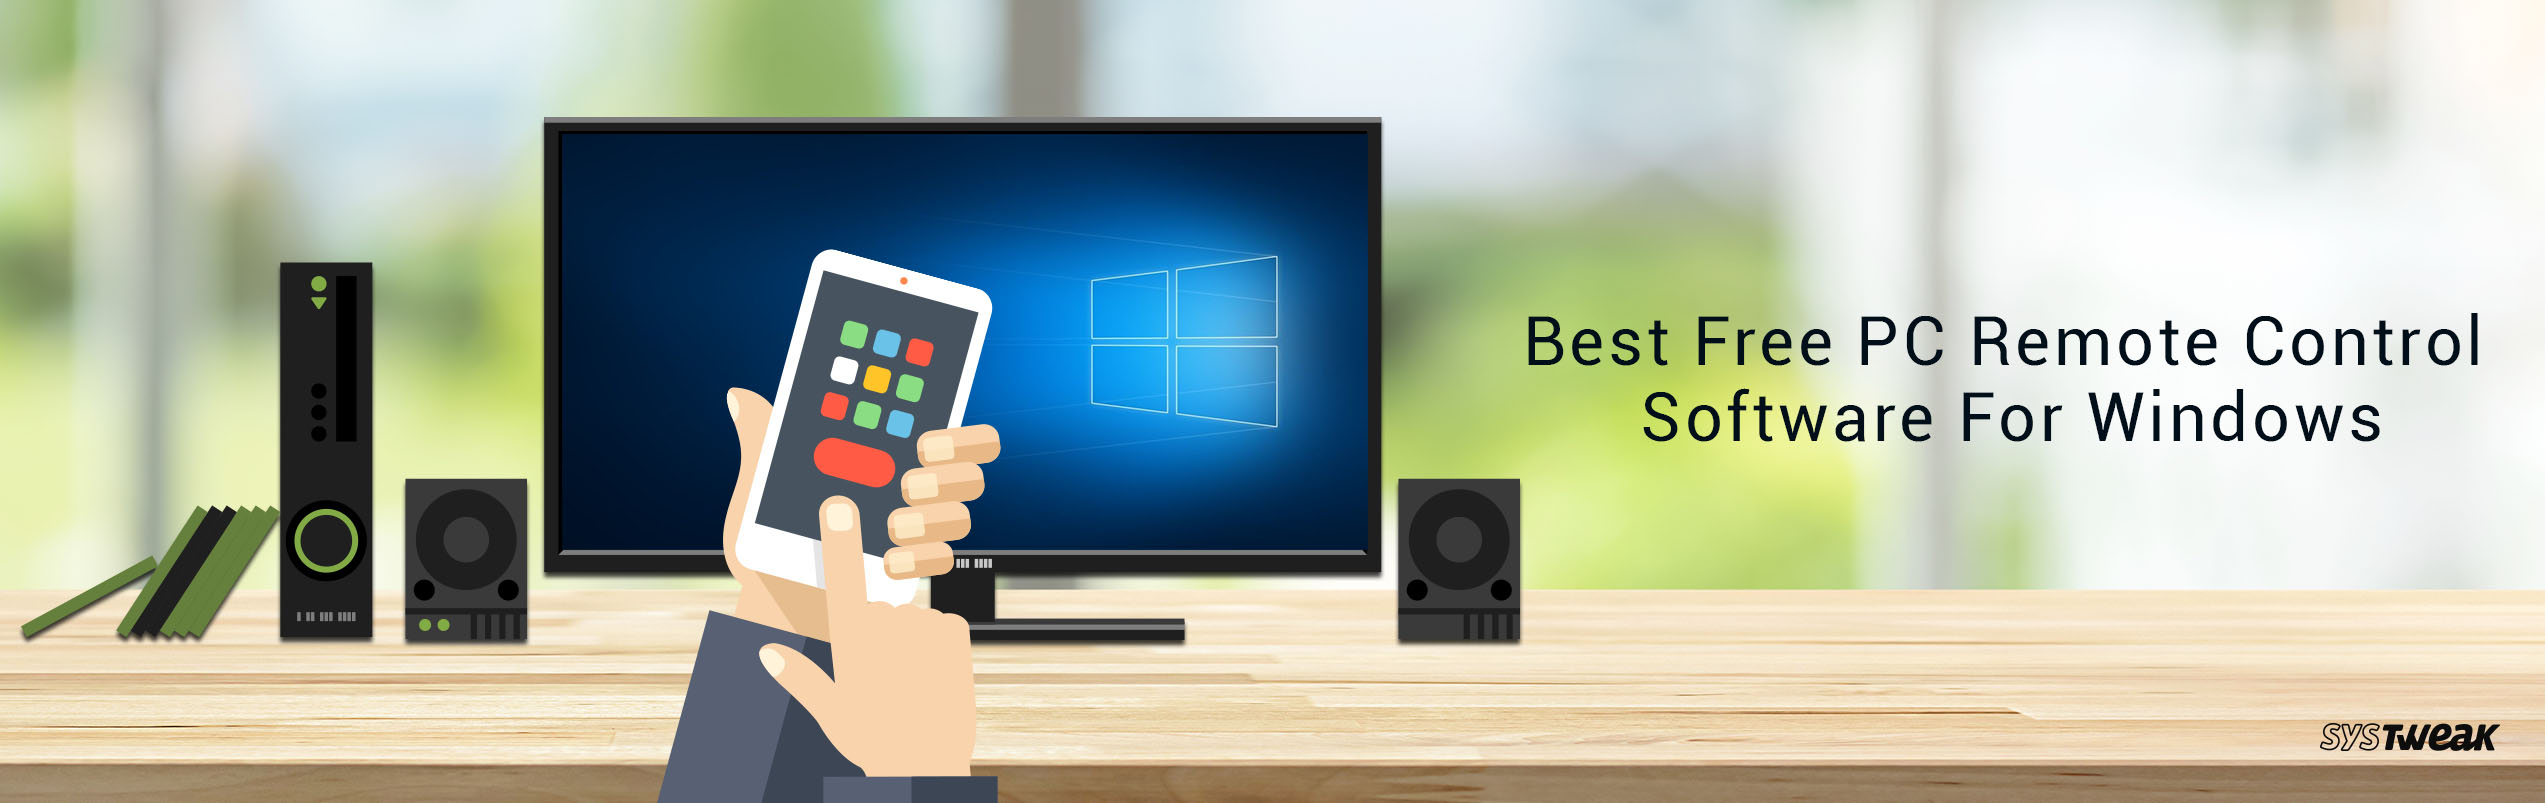 Best Free PC Remote Control Software For Windows In 2018